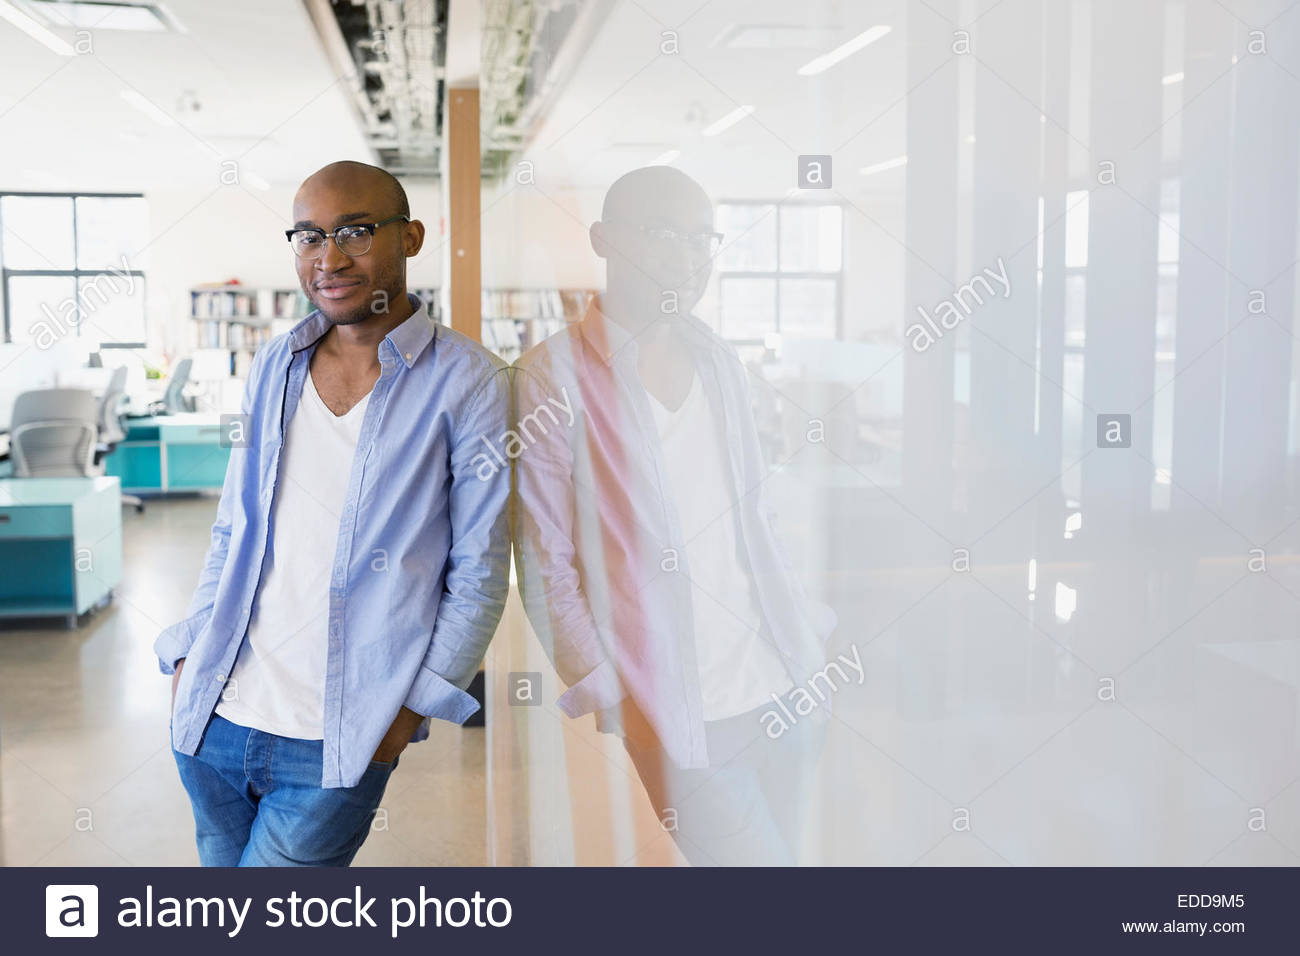 Portrait of confident businessman leaning against whiteboard - Stock Image